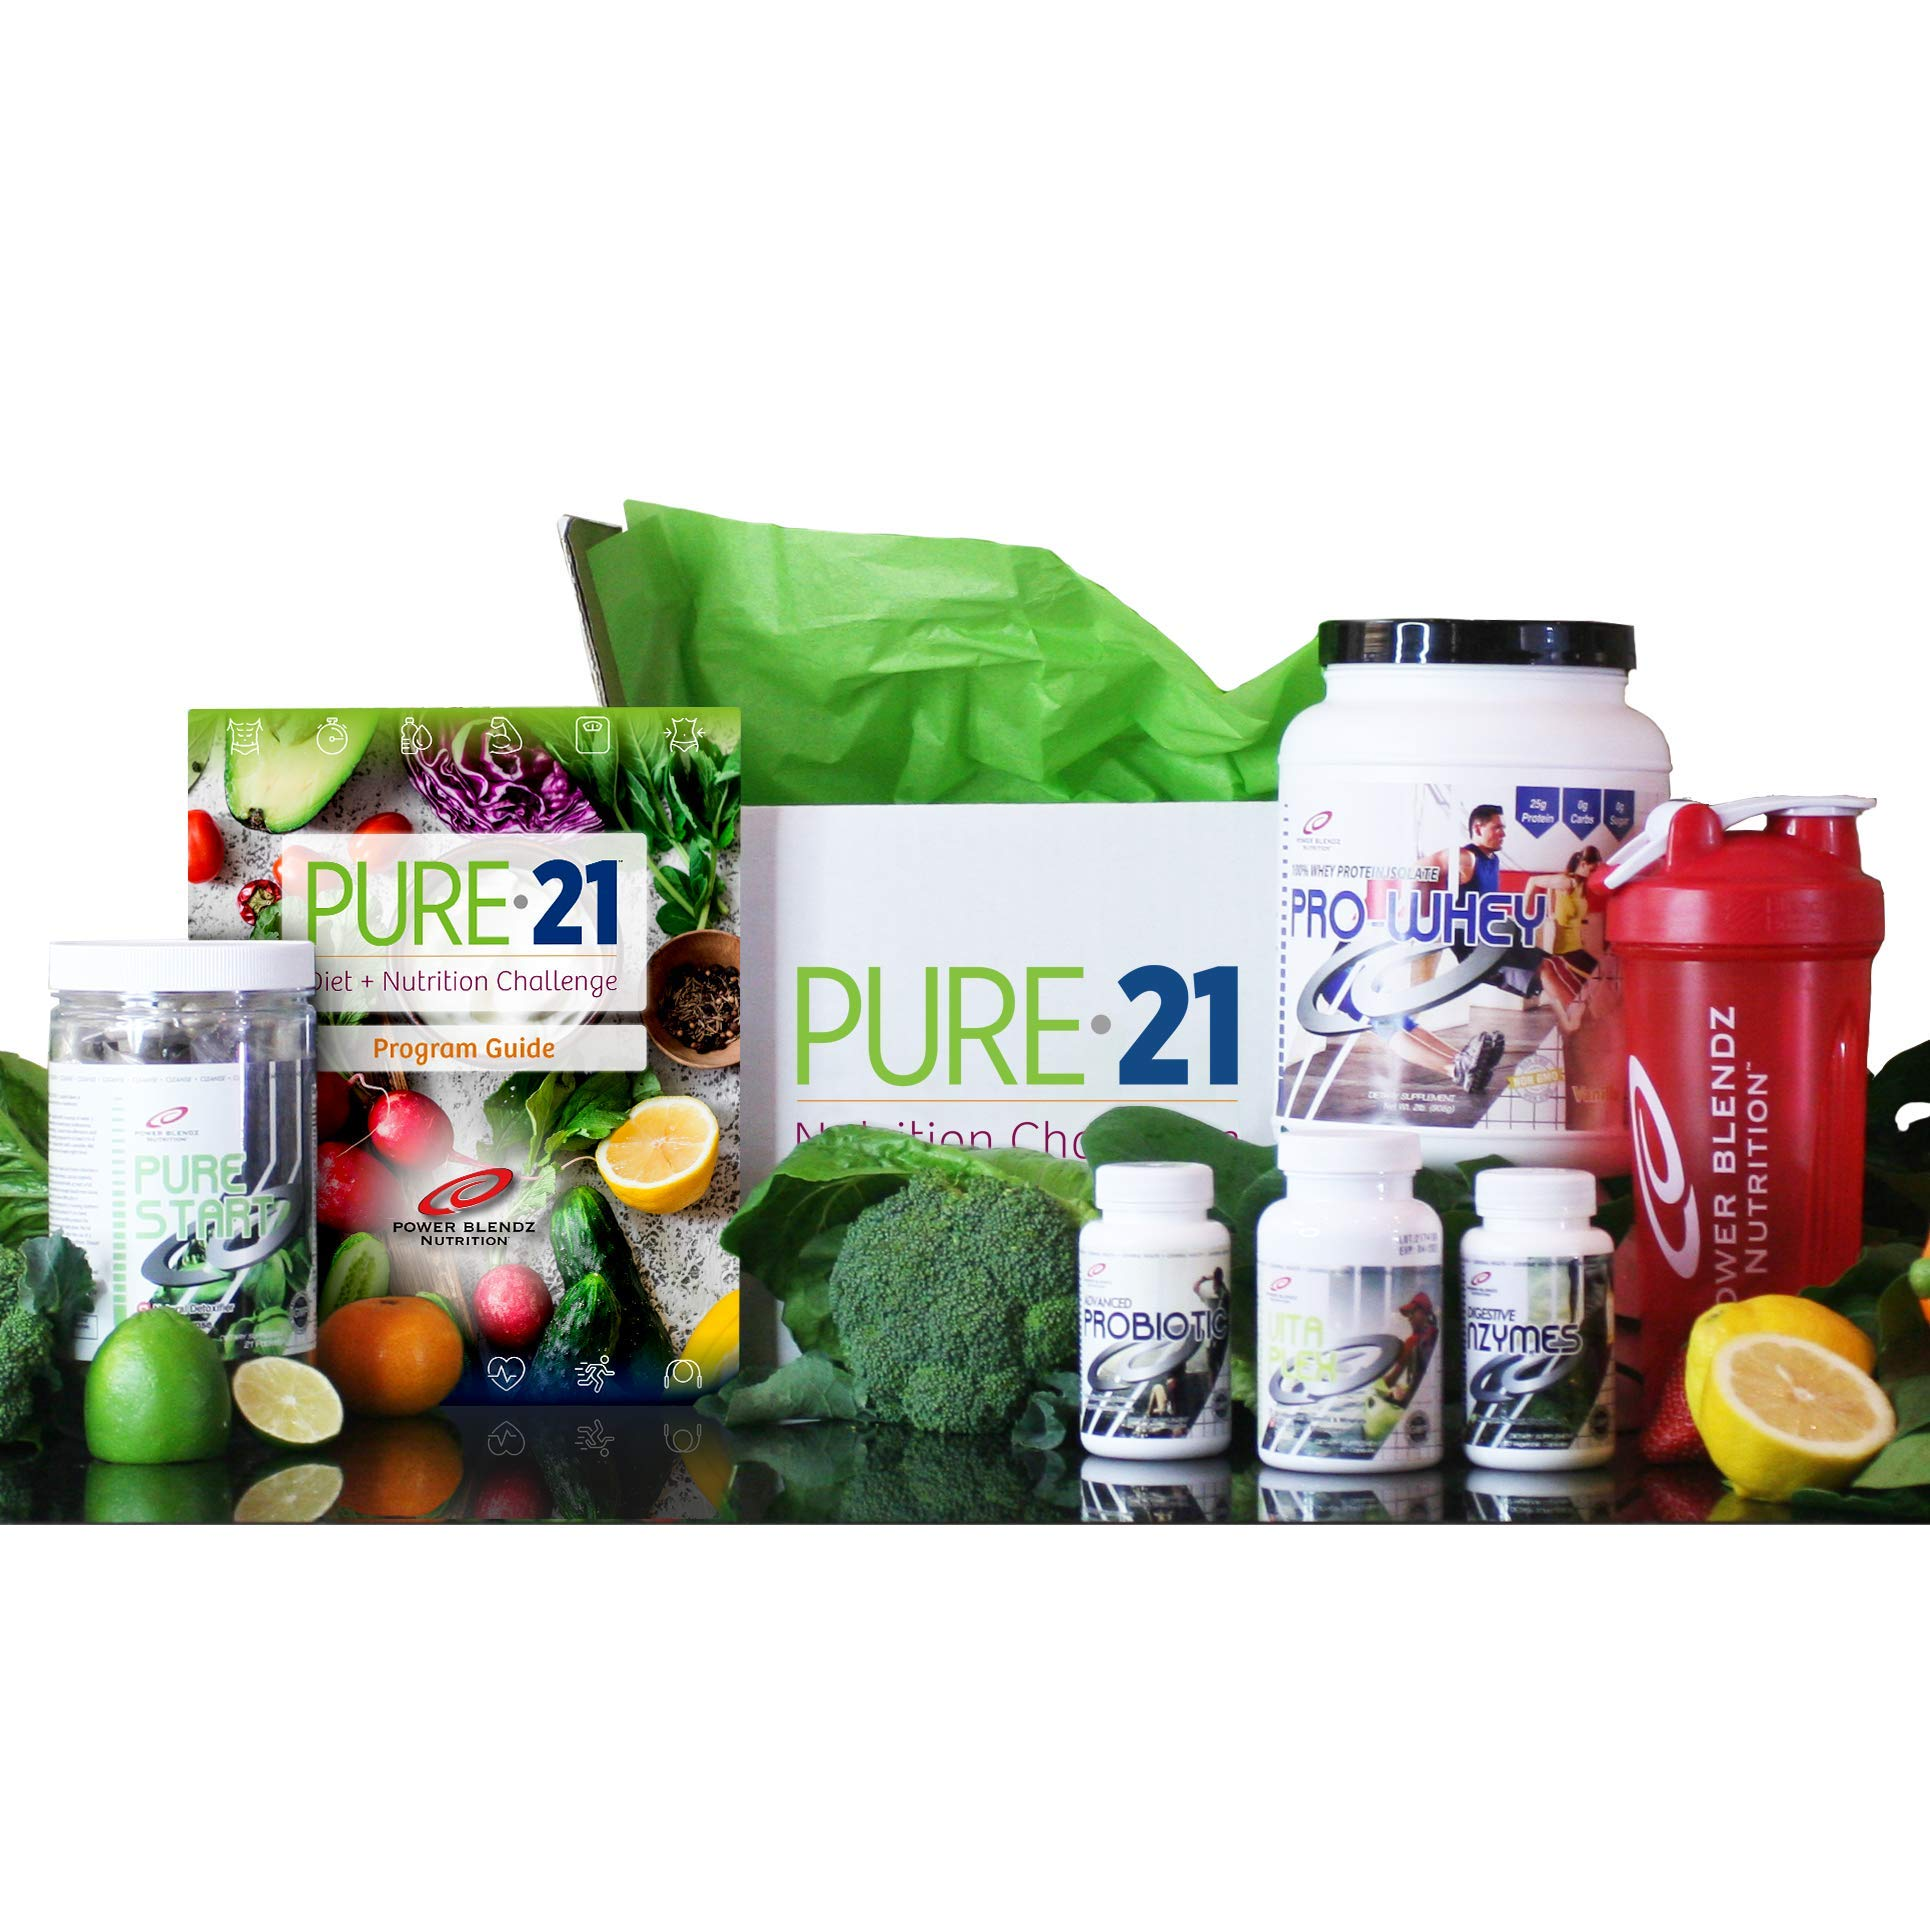 Pure 21 Weight Loss Diet Kit for Healthy Lifestyle   Made in The USA   All Natural   by Power Blendz   Chocolate Flavor